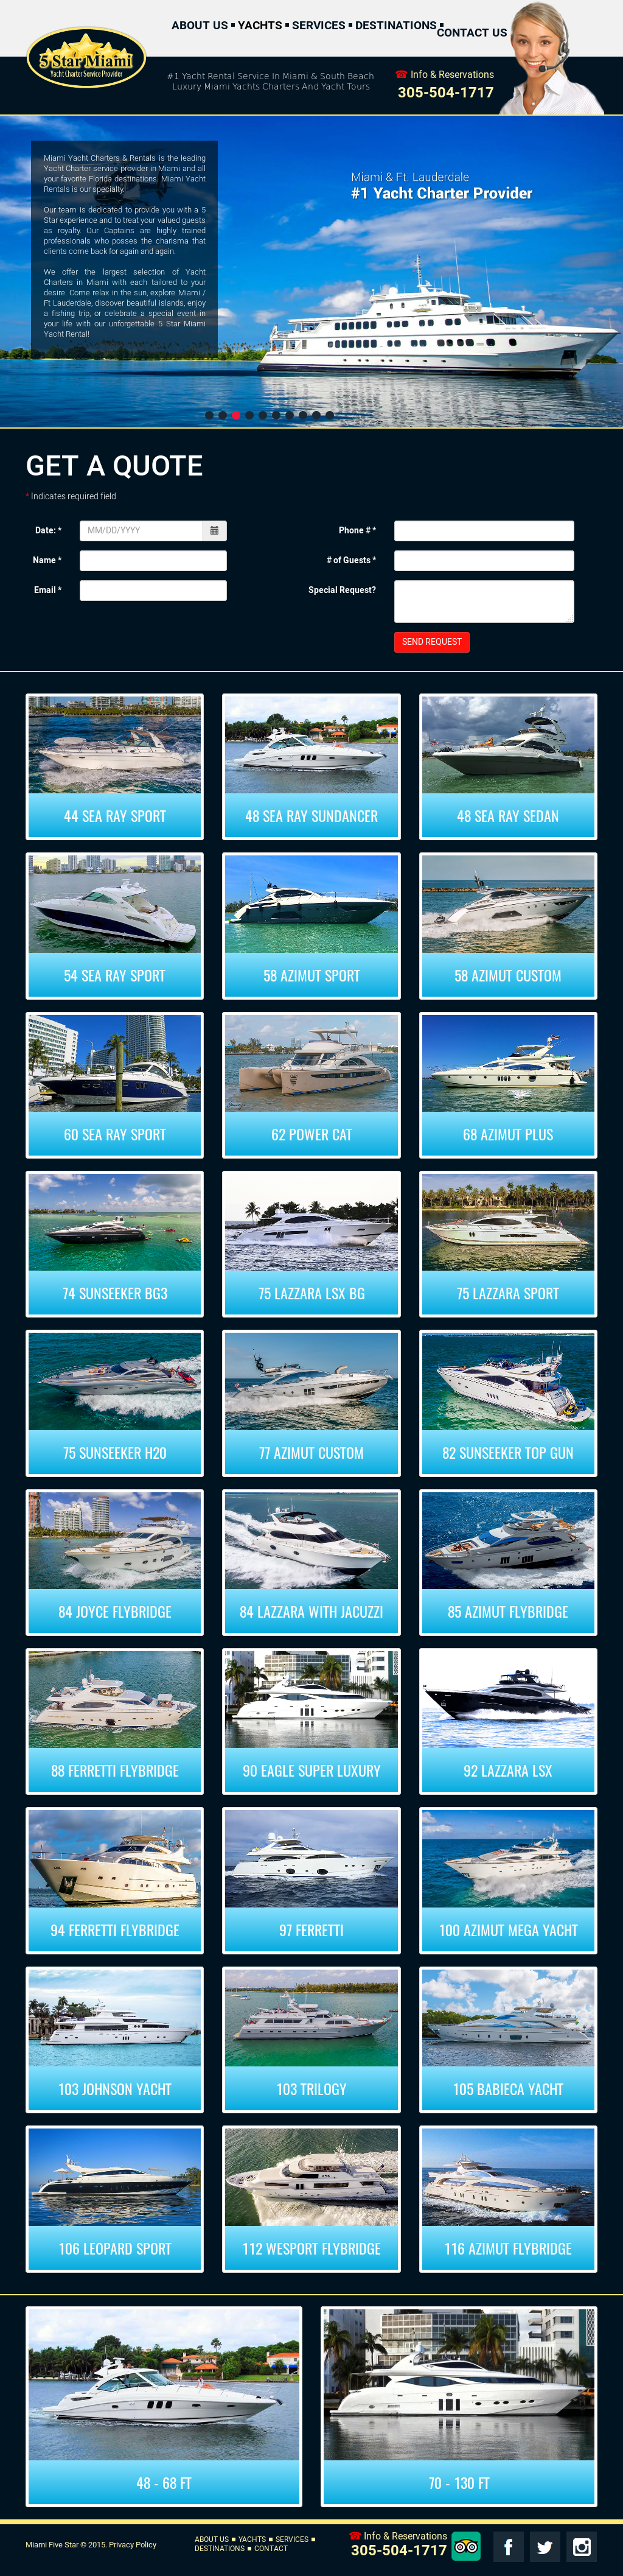 Miami Yacht Charters Rentals Competitors Revenue And